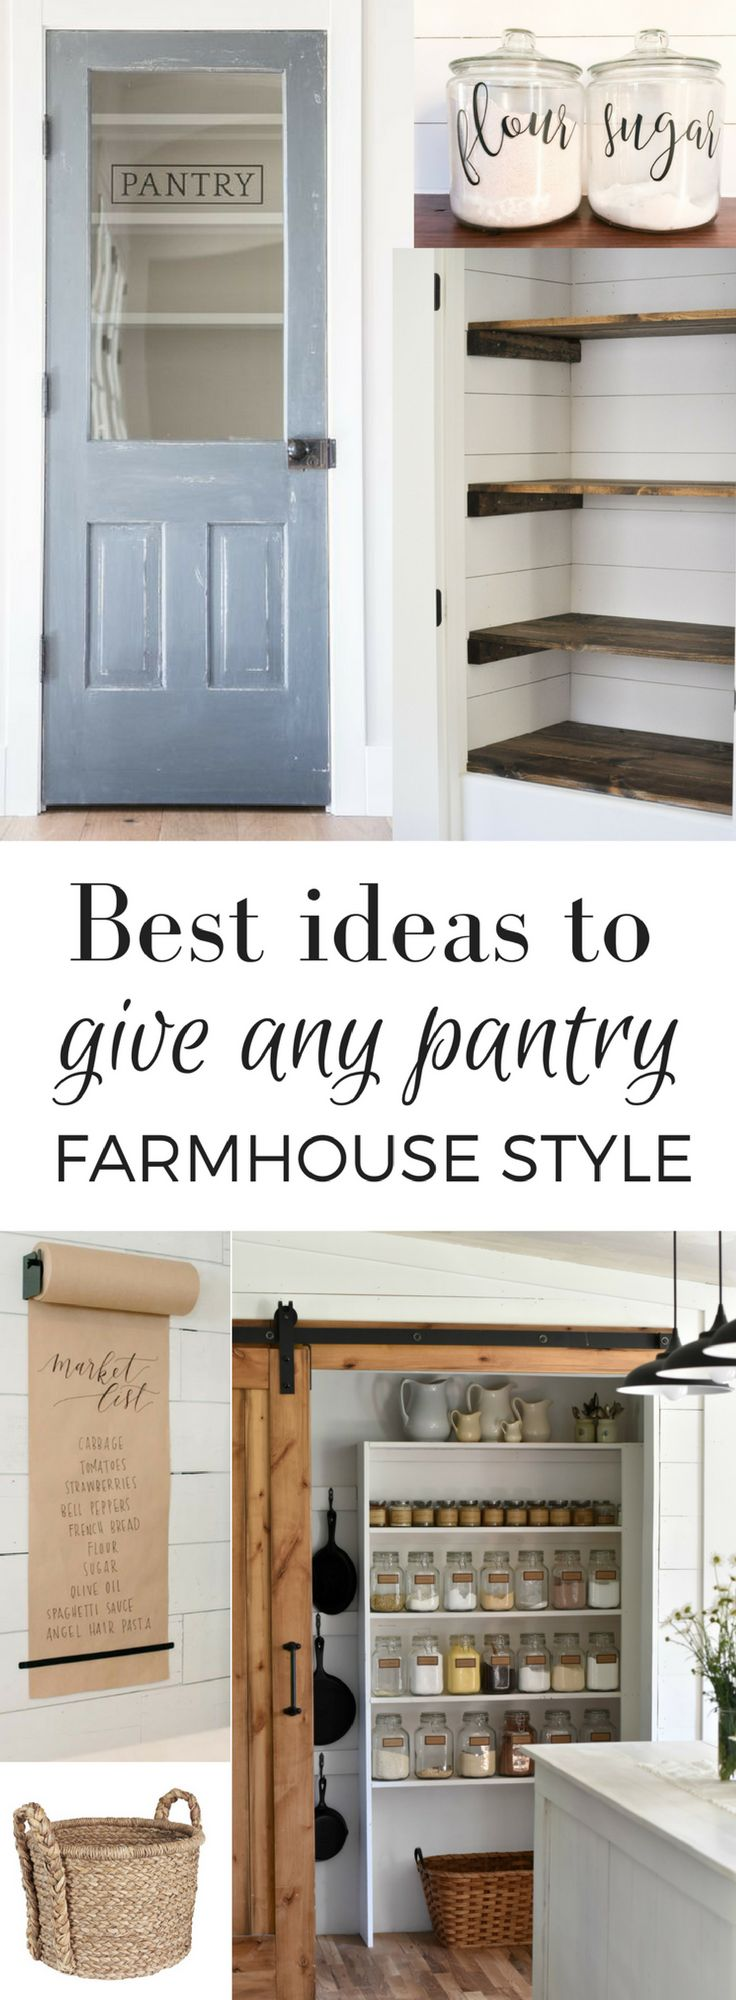 Best Ideas to Give Any Pantry Farmhouse Style